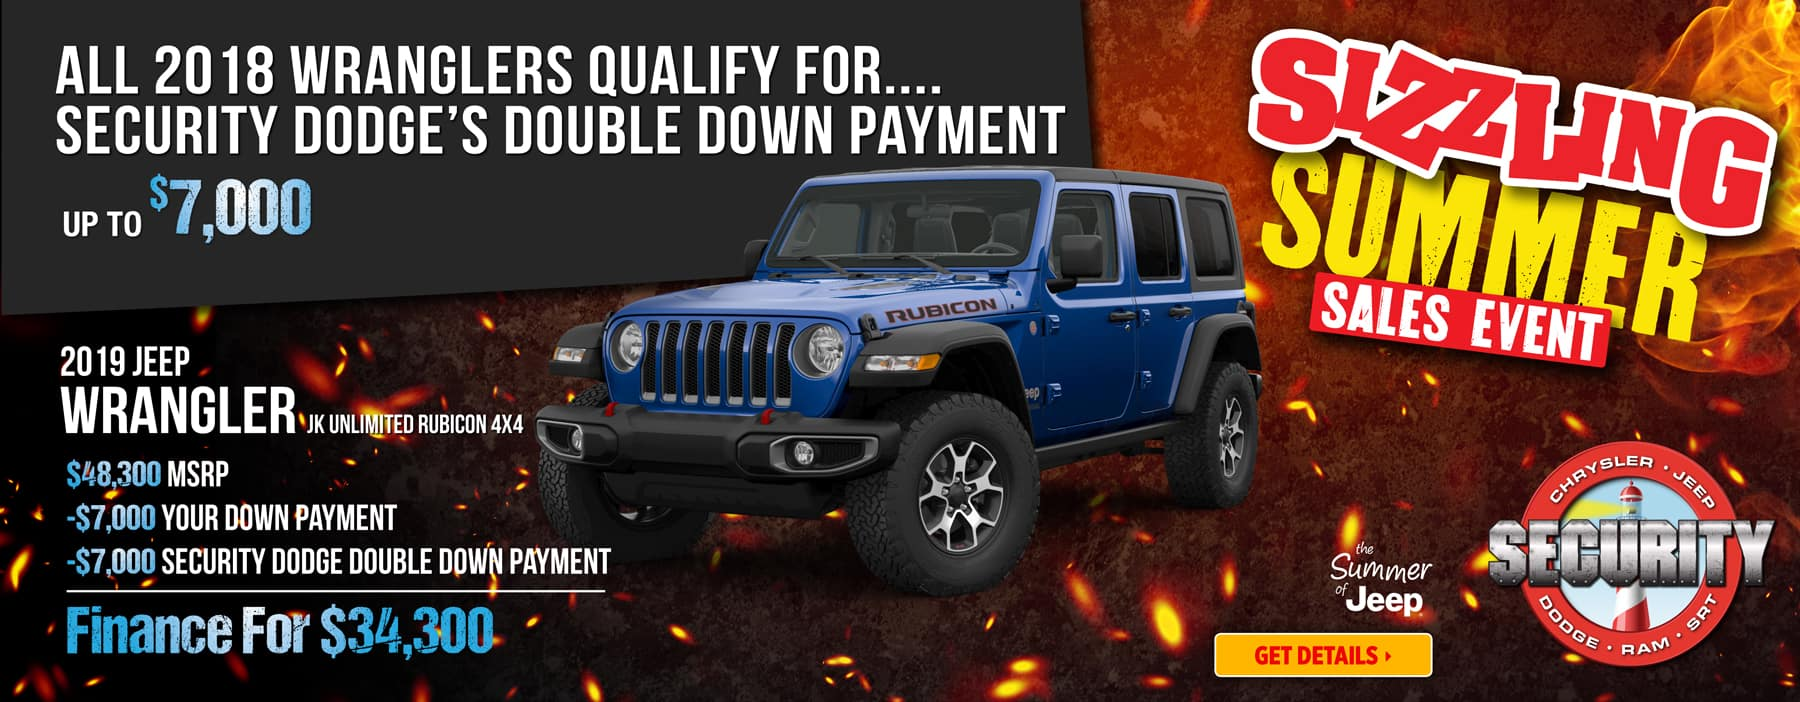 2019.08.08-Security-Dodge-Aug-DD-Payment-Banner-S42786cr_02